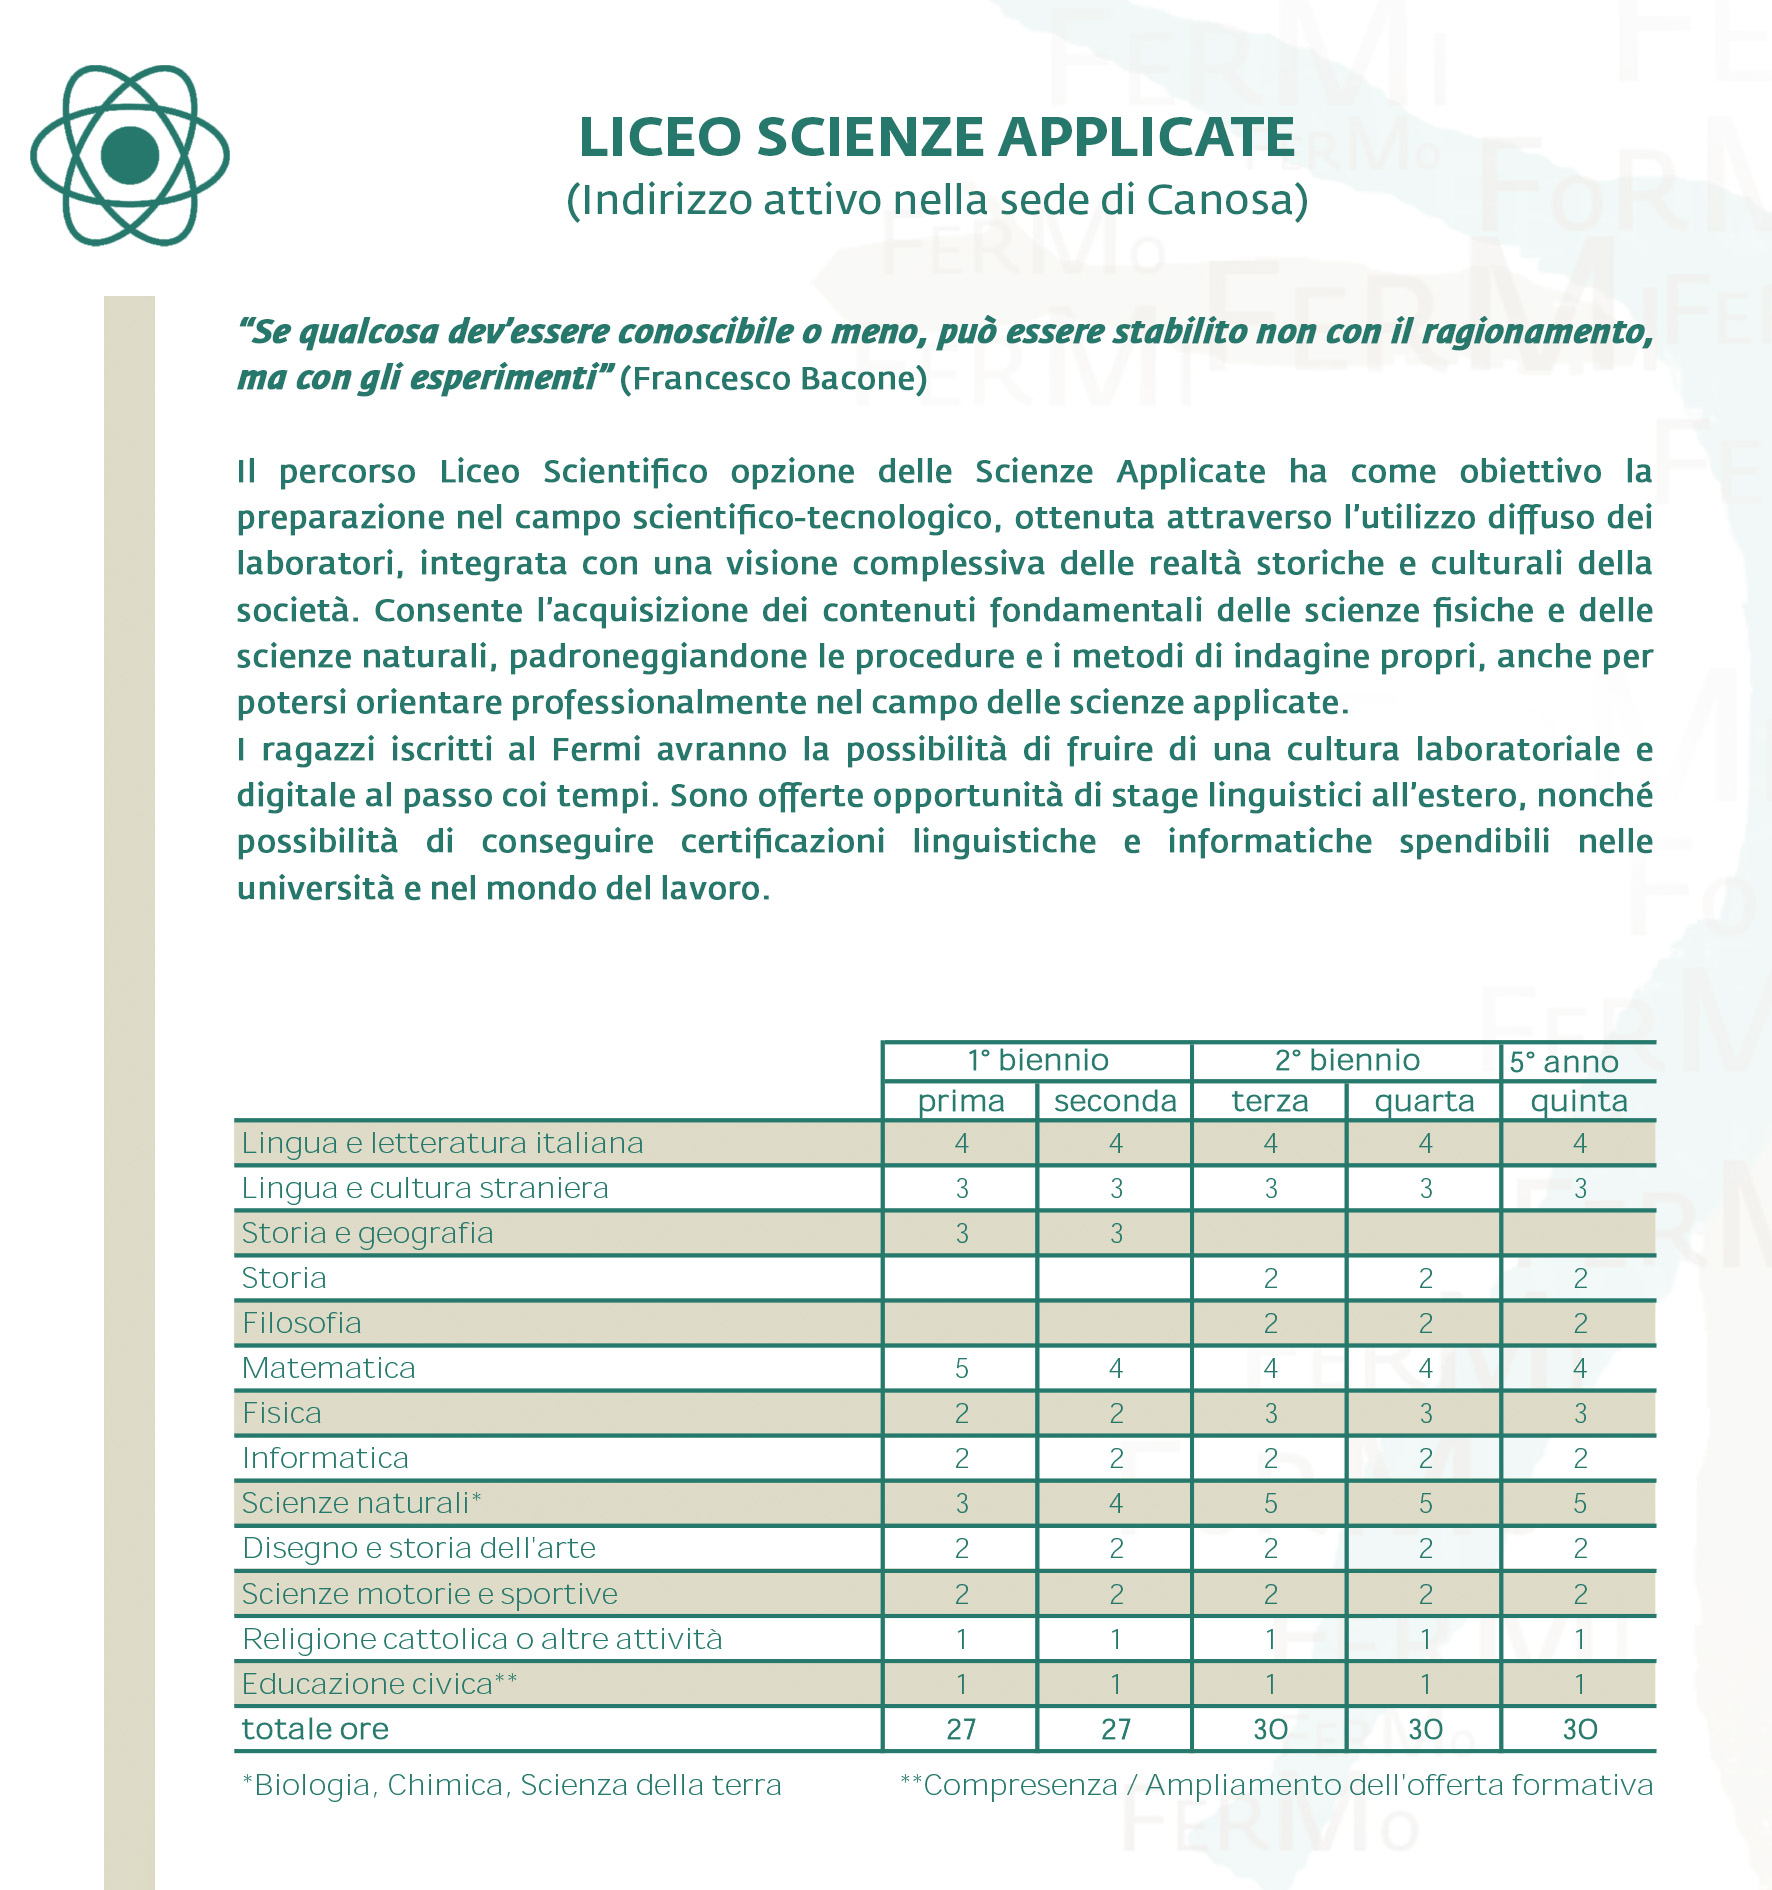 scienze applicate Canosa